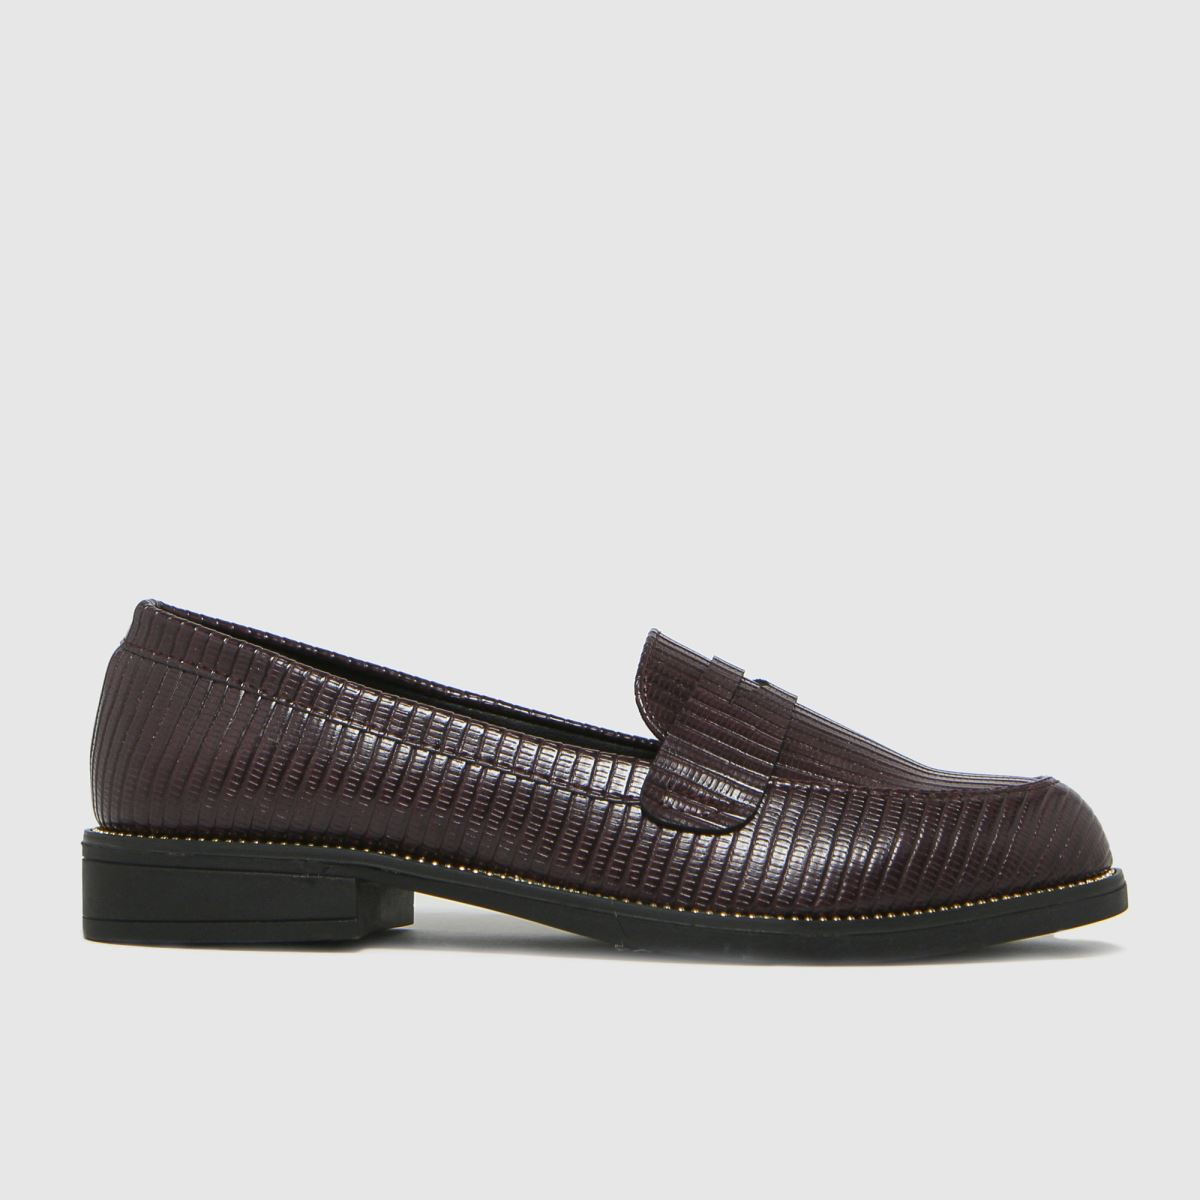 schuh Schuh Burgundy Lucy Stud Detail Flat Shoes